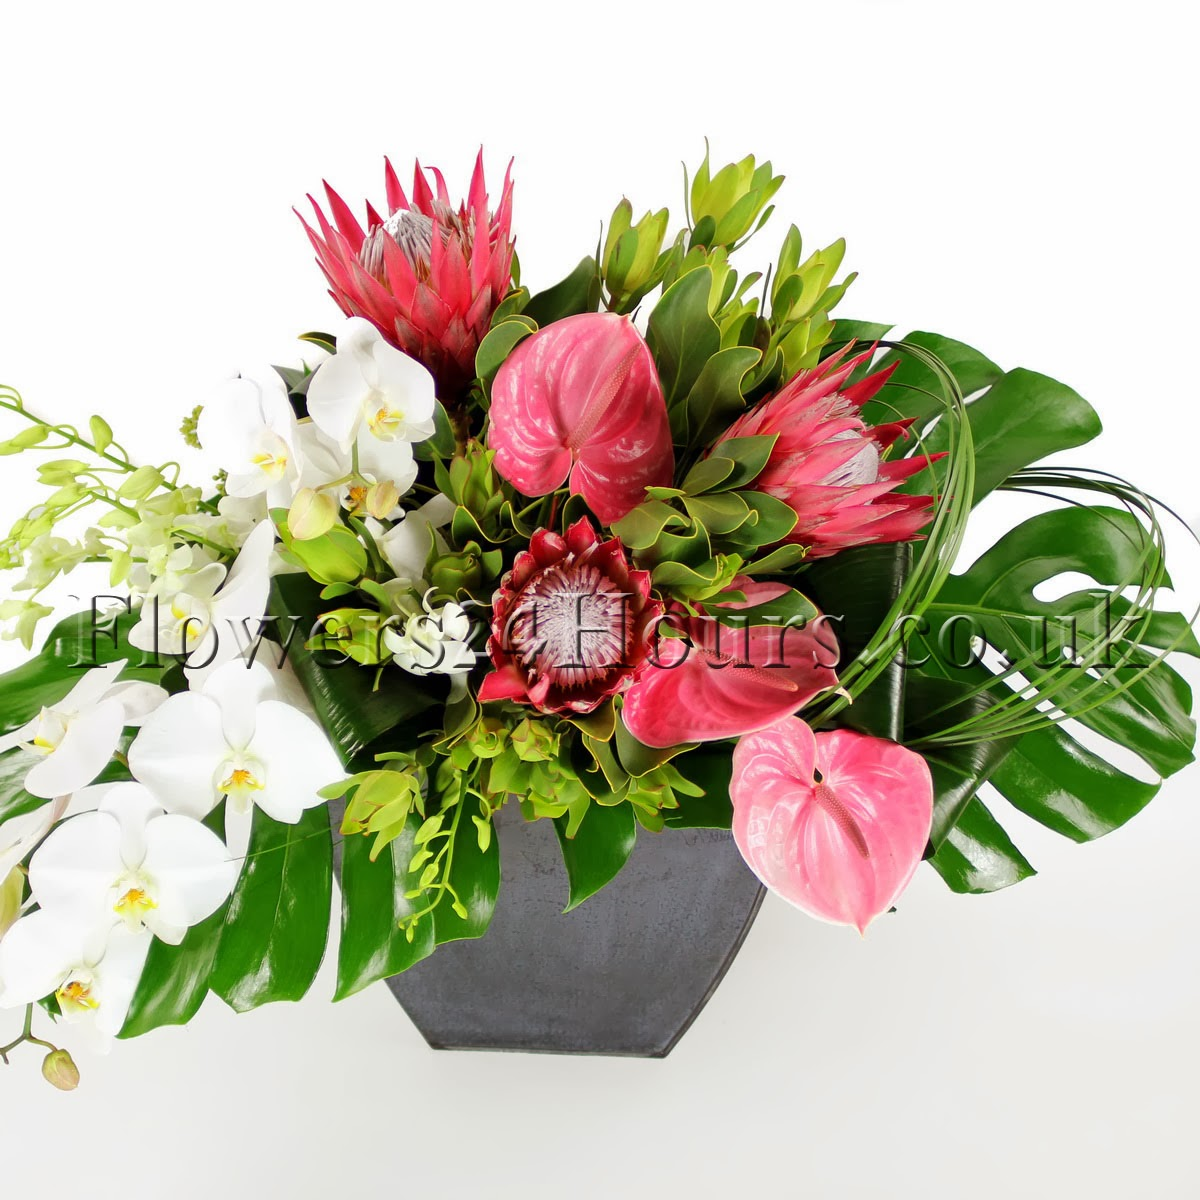 UK flowers delivery company Flowers24Hours arranges this season\'s ...